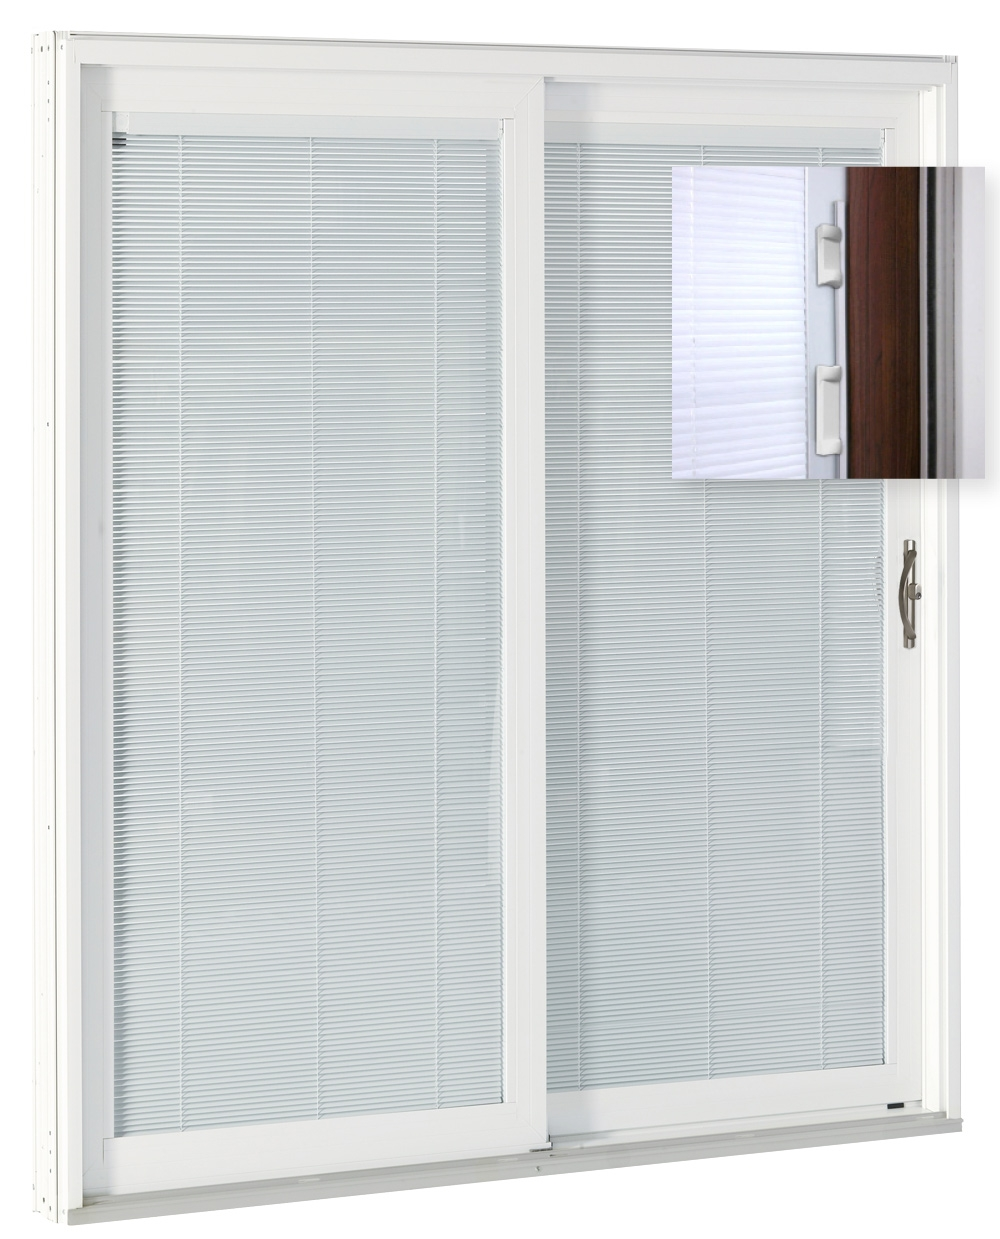 Sliding Glass Patio Doors With Internal Blindsprovia sliding glass patio door options